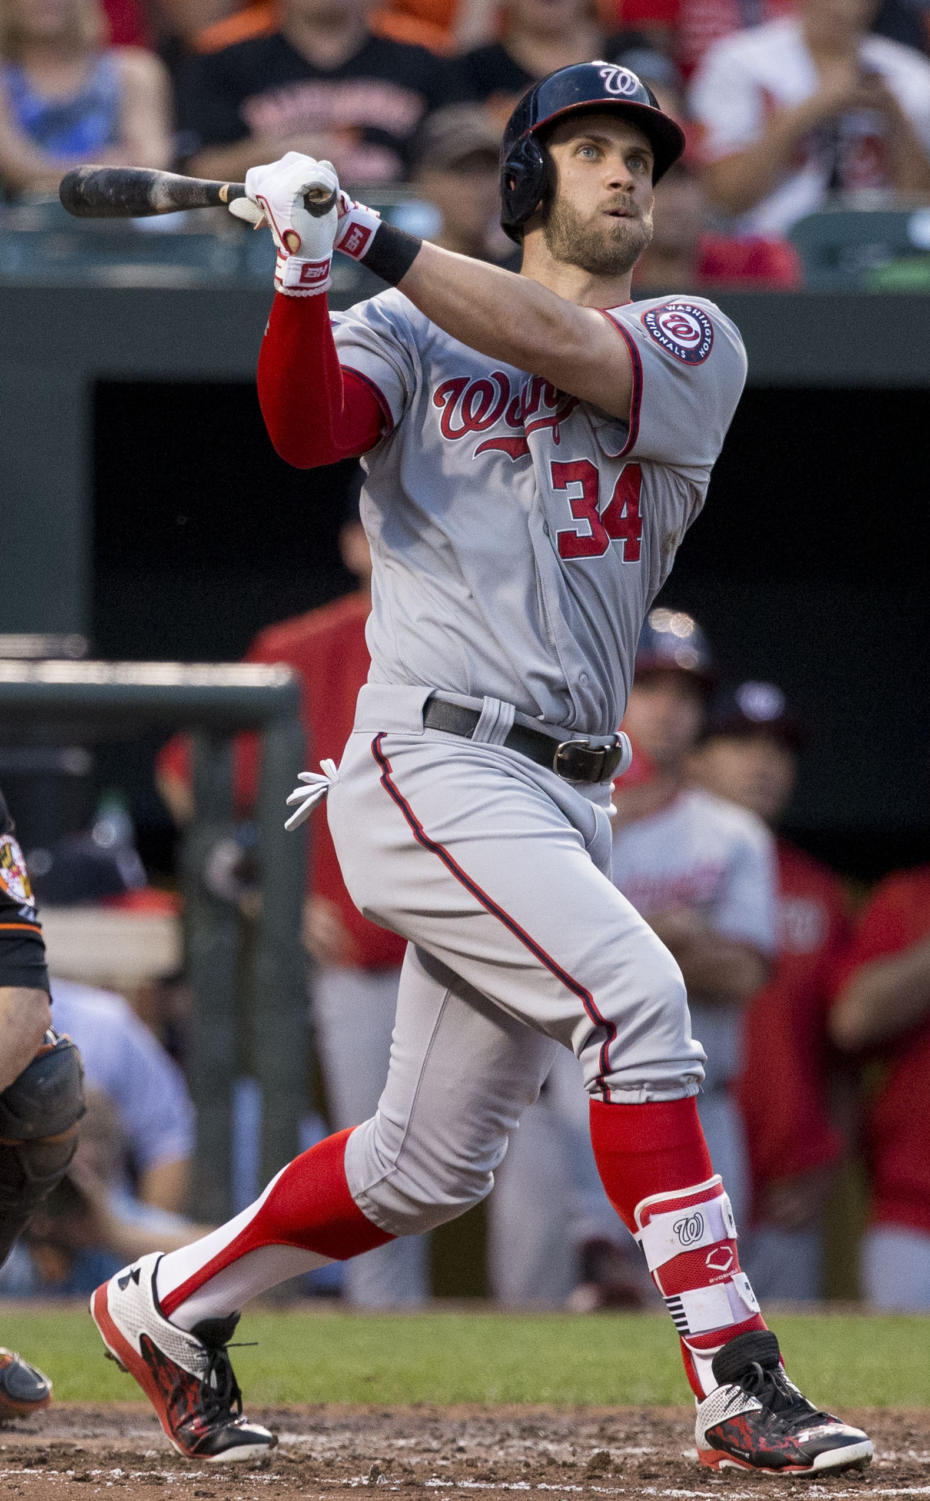 Bryce Harper spent his first 7 seasons on the Washington Nationals. Following the 2018 season, Harper signed with the Philadelphia Phillies.